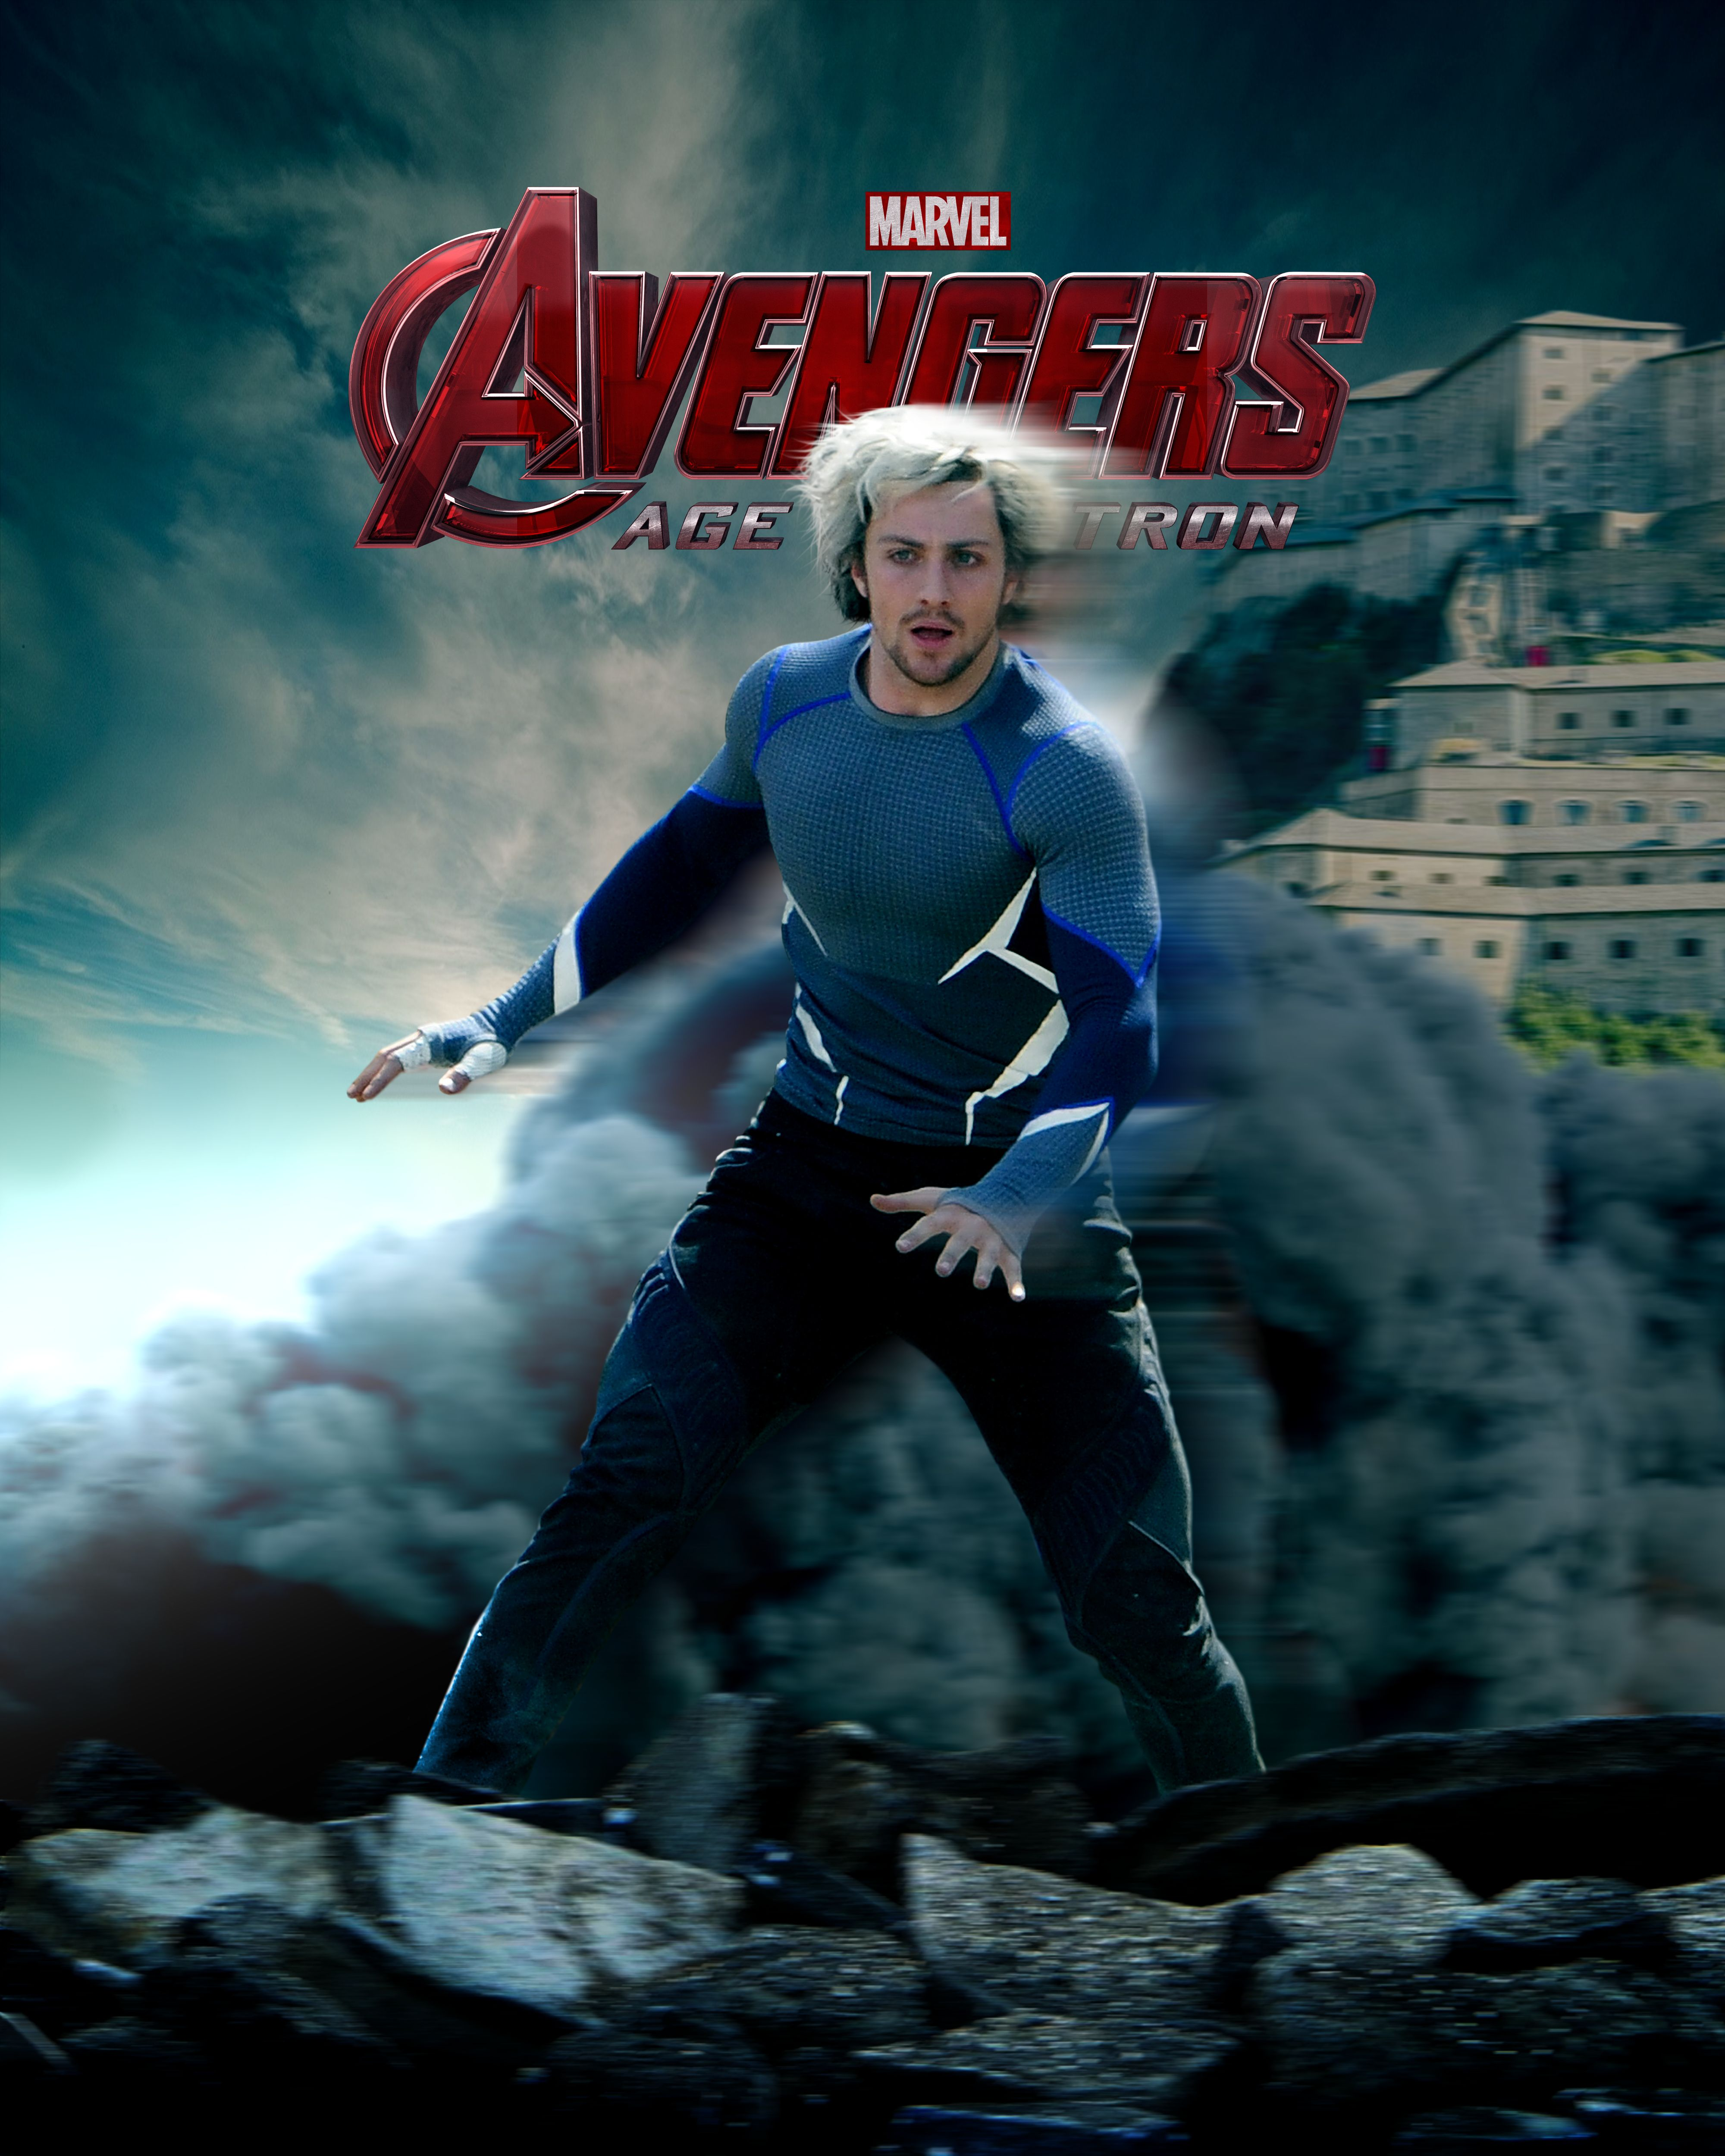 Movie Quicksilver marvel forecast to wear for everyday in 2019